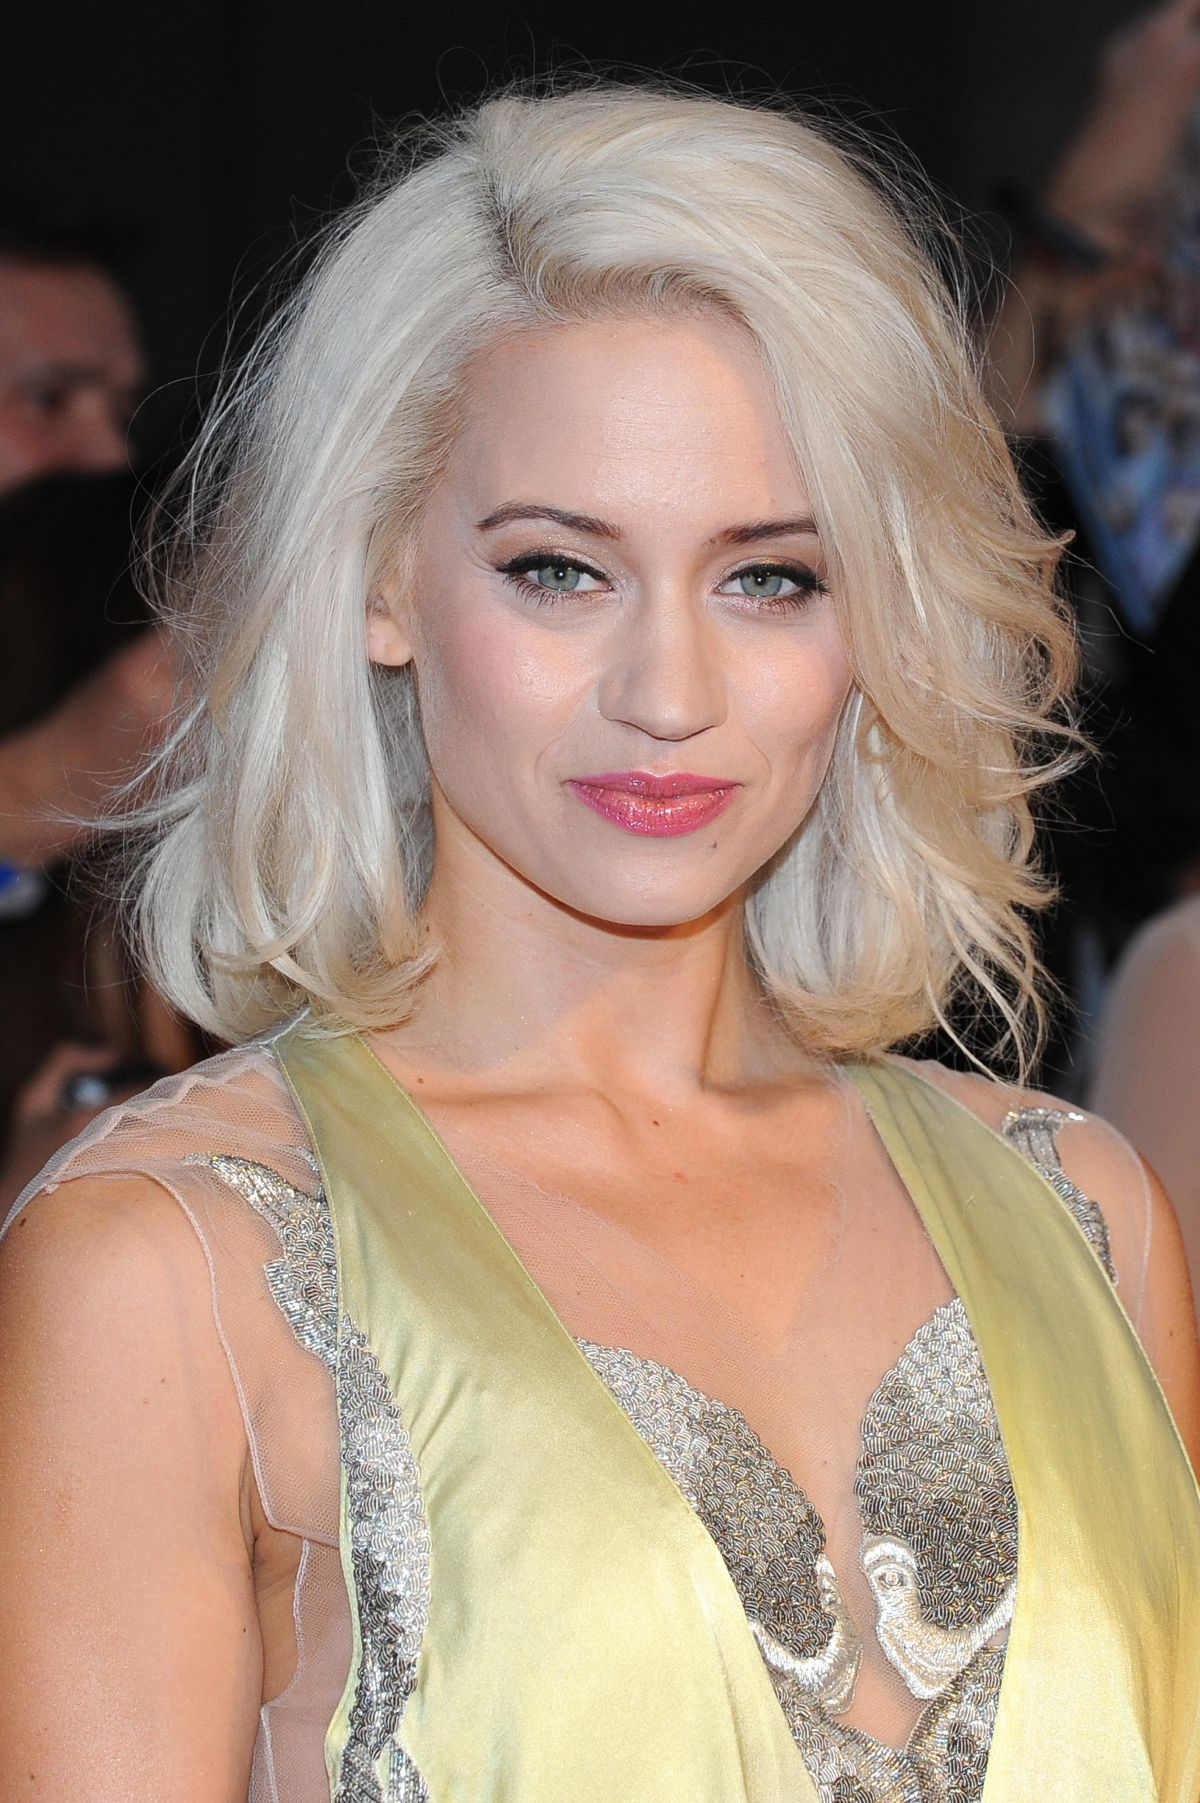 Kimberly Wyatt Pop Singer